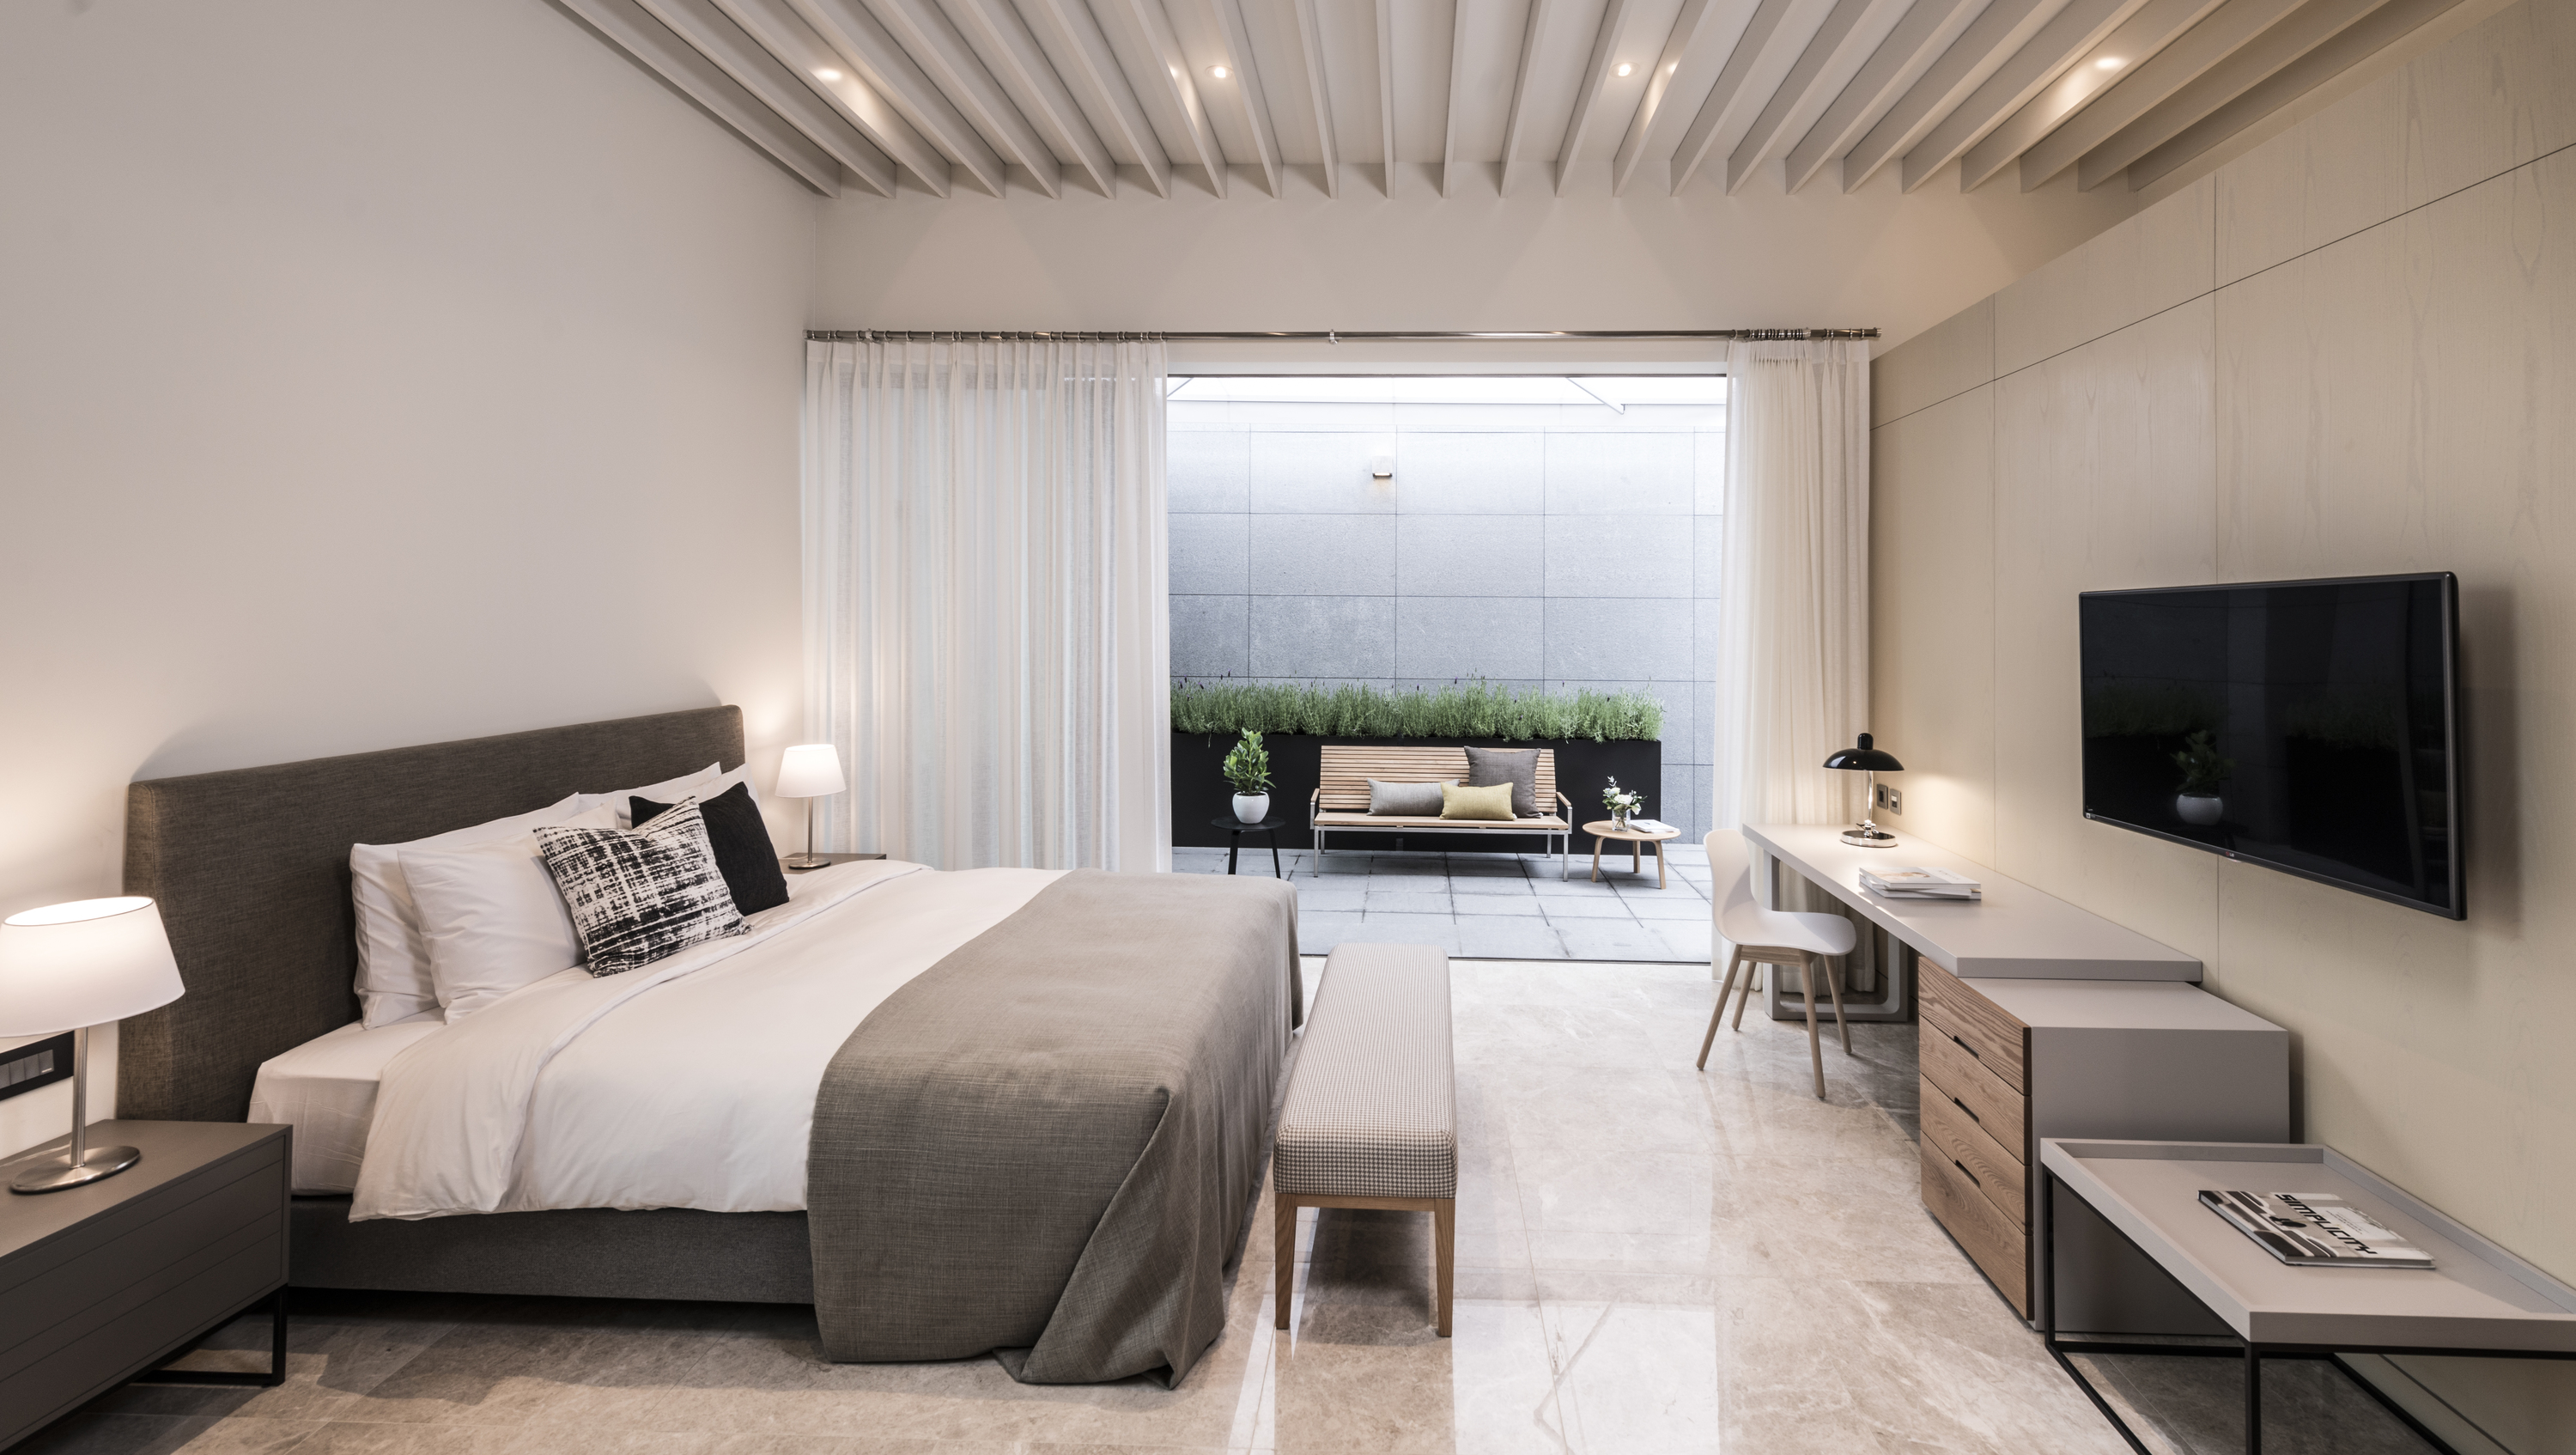 Hotels time out seoul for Design boutique hotels schweiz